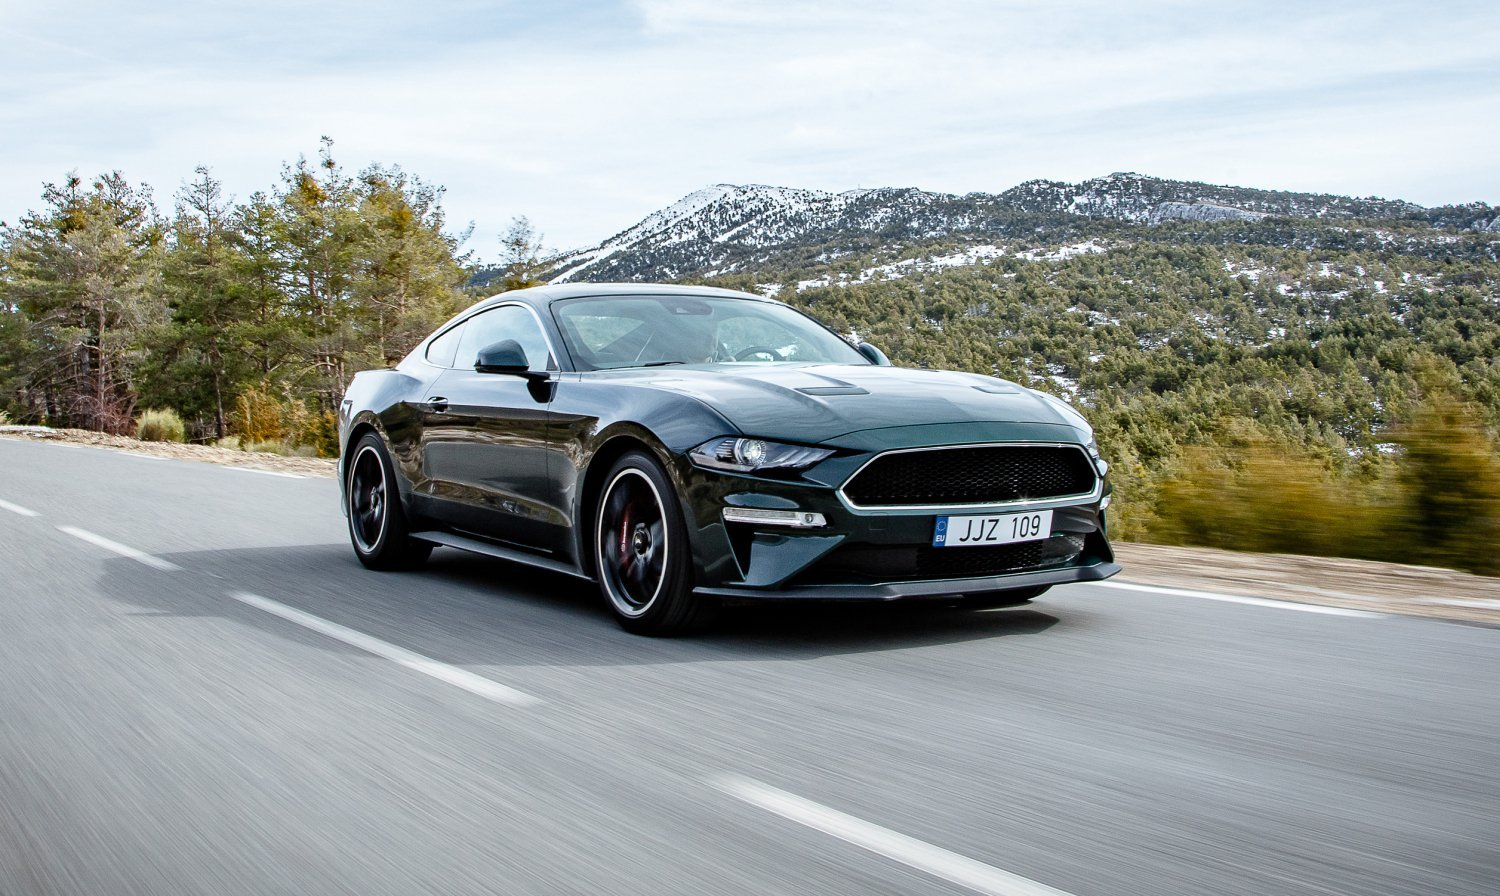 Jubileuszowy Ford Mustang